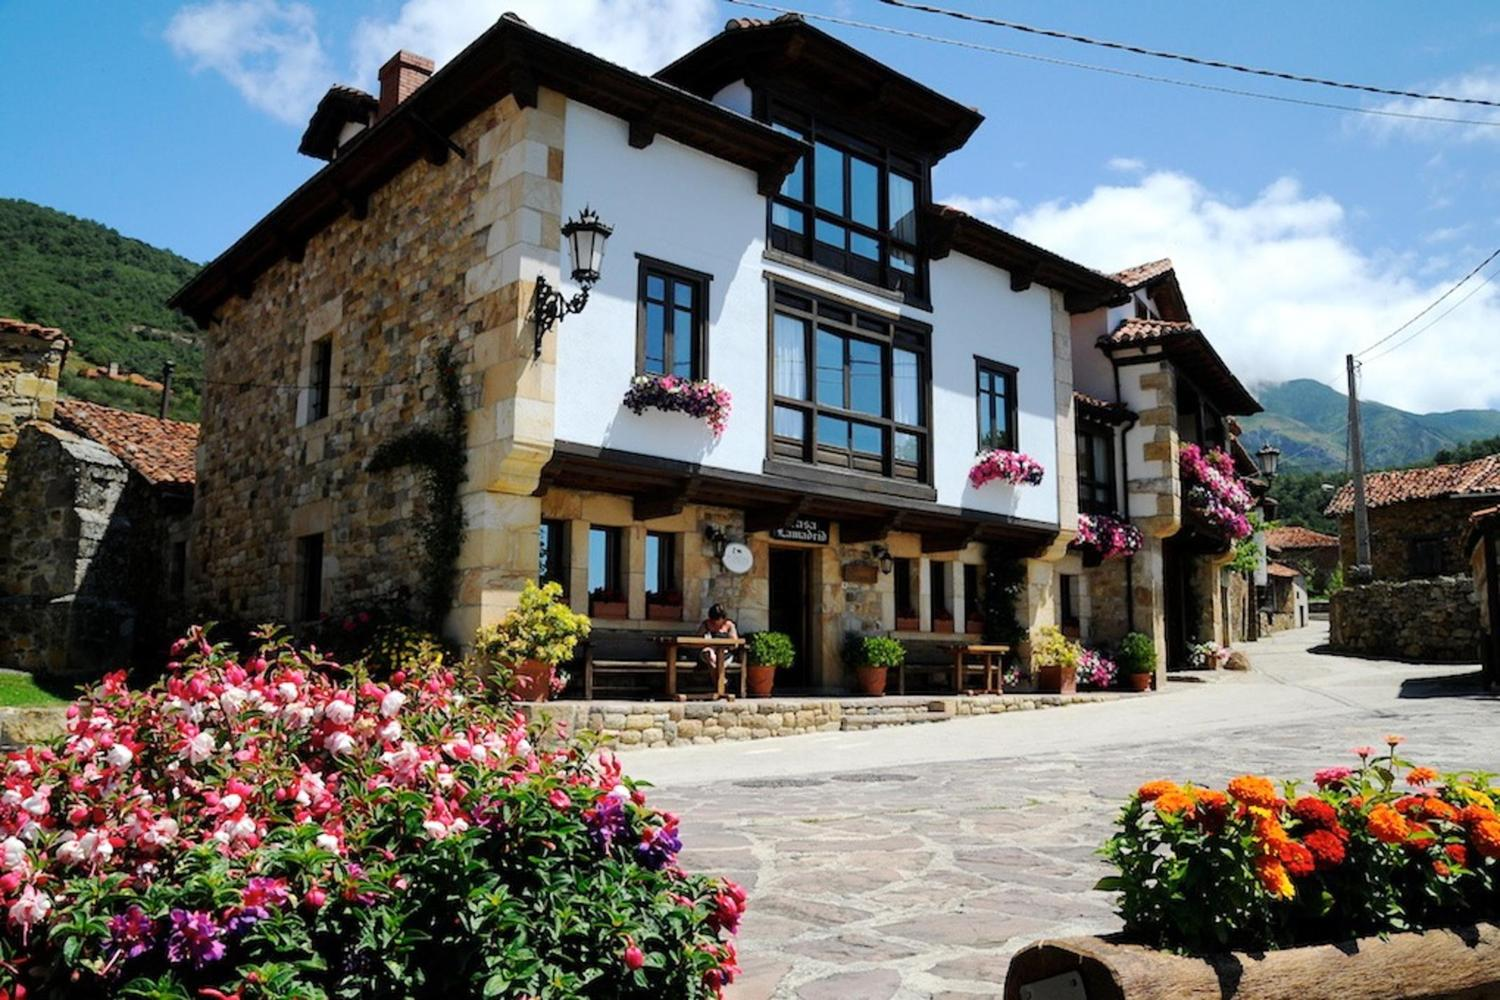 Stay in beautiful traditional inns across the Picos de Europa